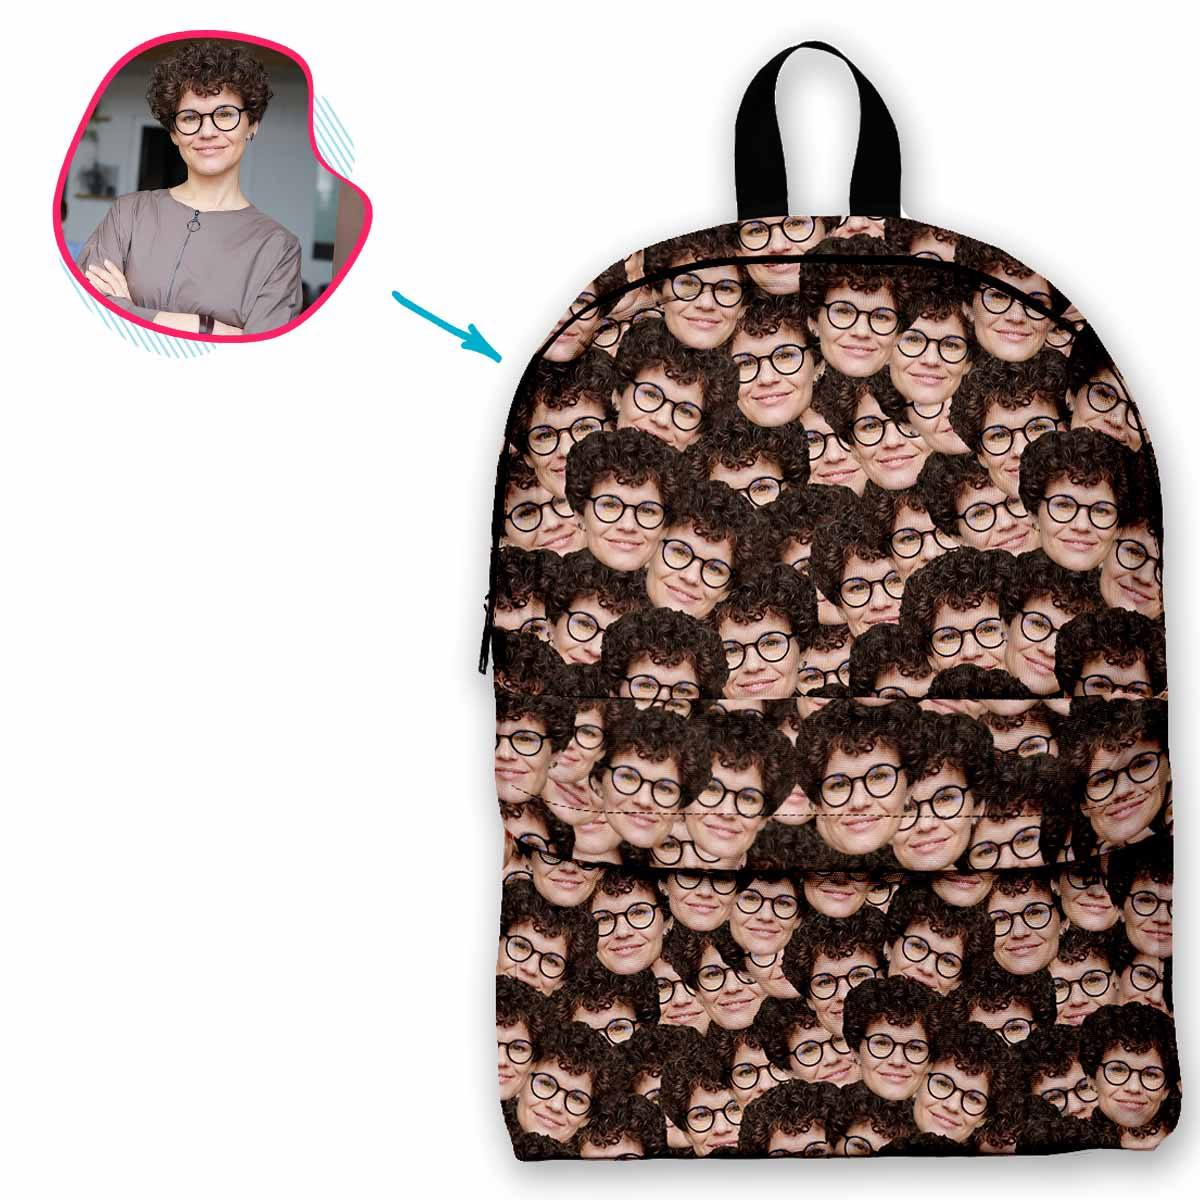 face mash classic backpack personalized with photo of face printed on it